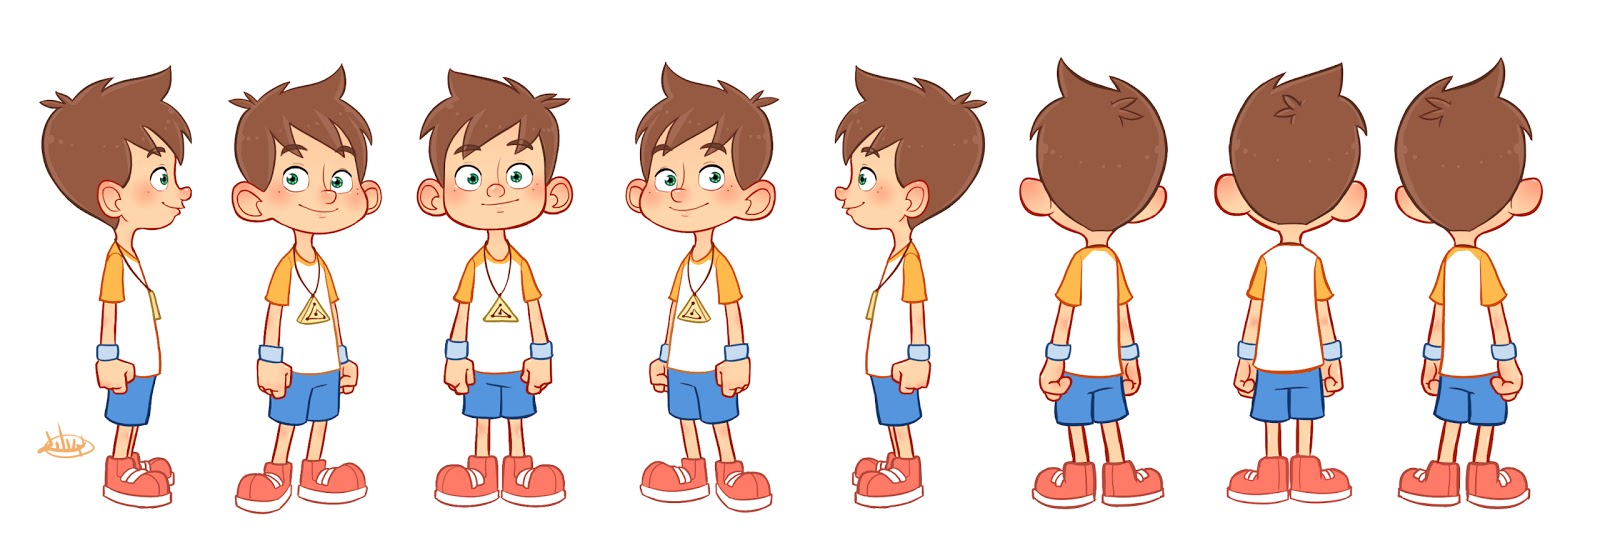 Character Design Little Boy : The art of luigi lucarelli february